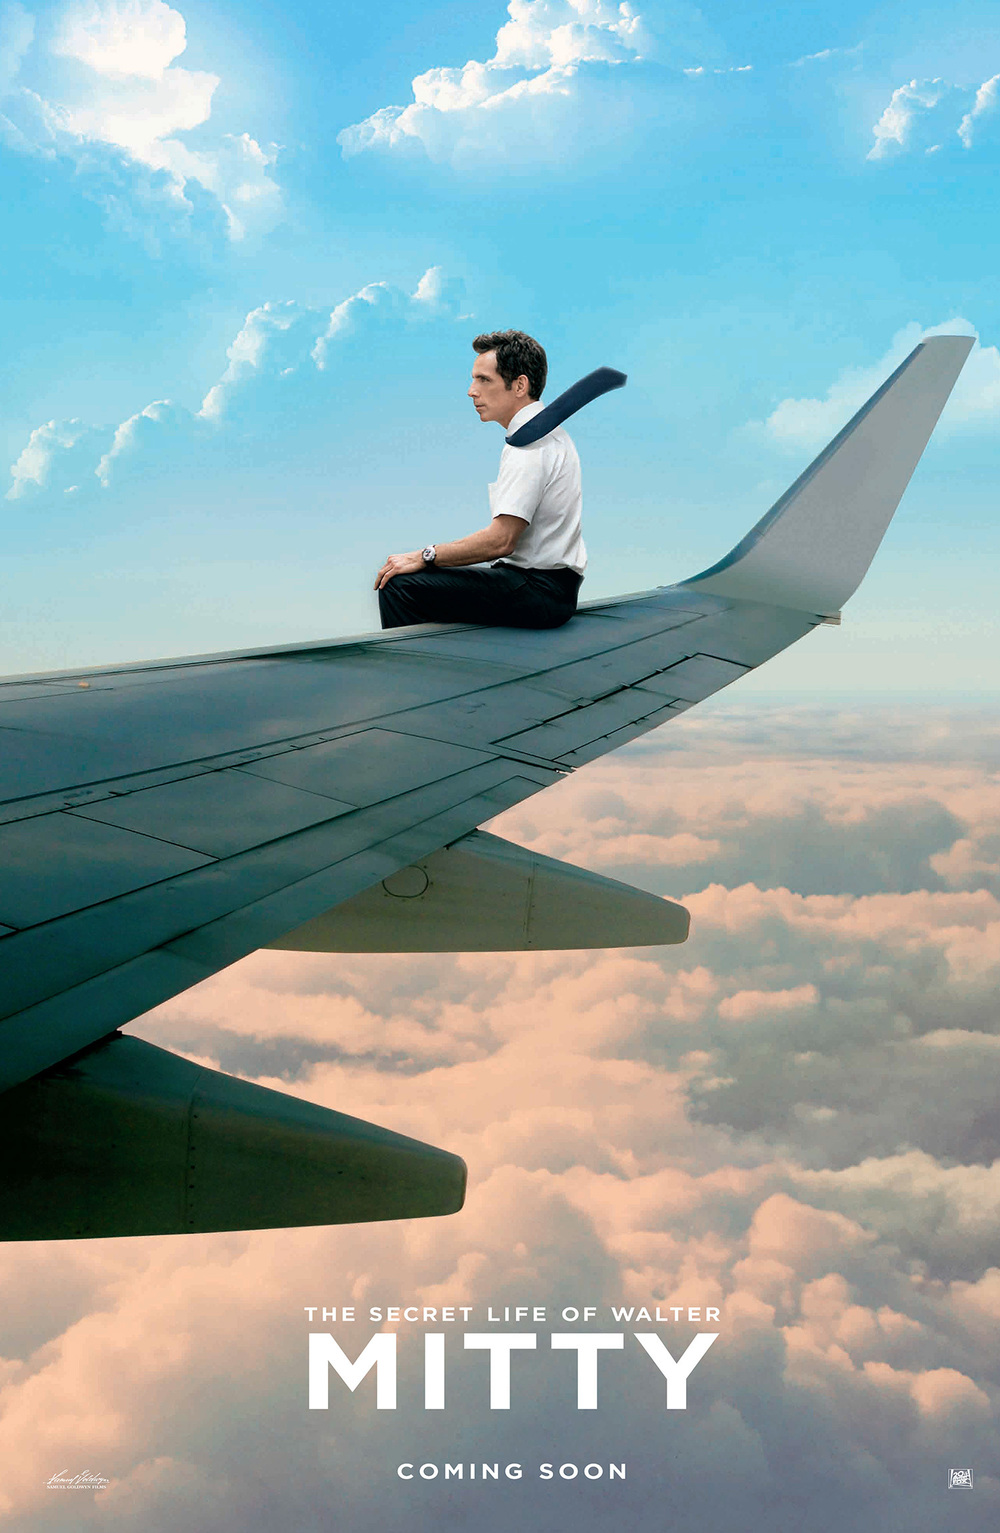 walter_mitty_flying_poster_ben_stiller_large_192iv7l-192ivg6.jpg